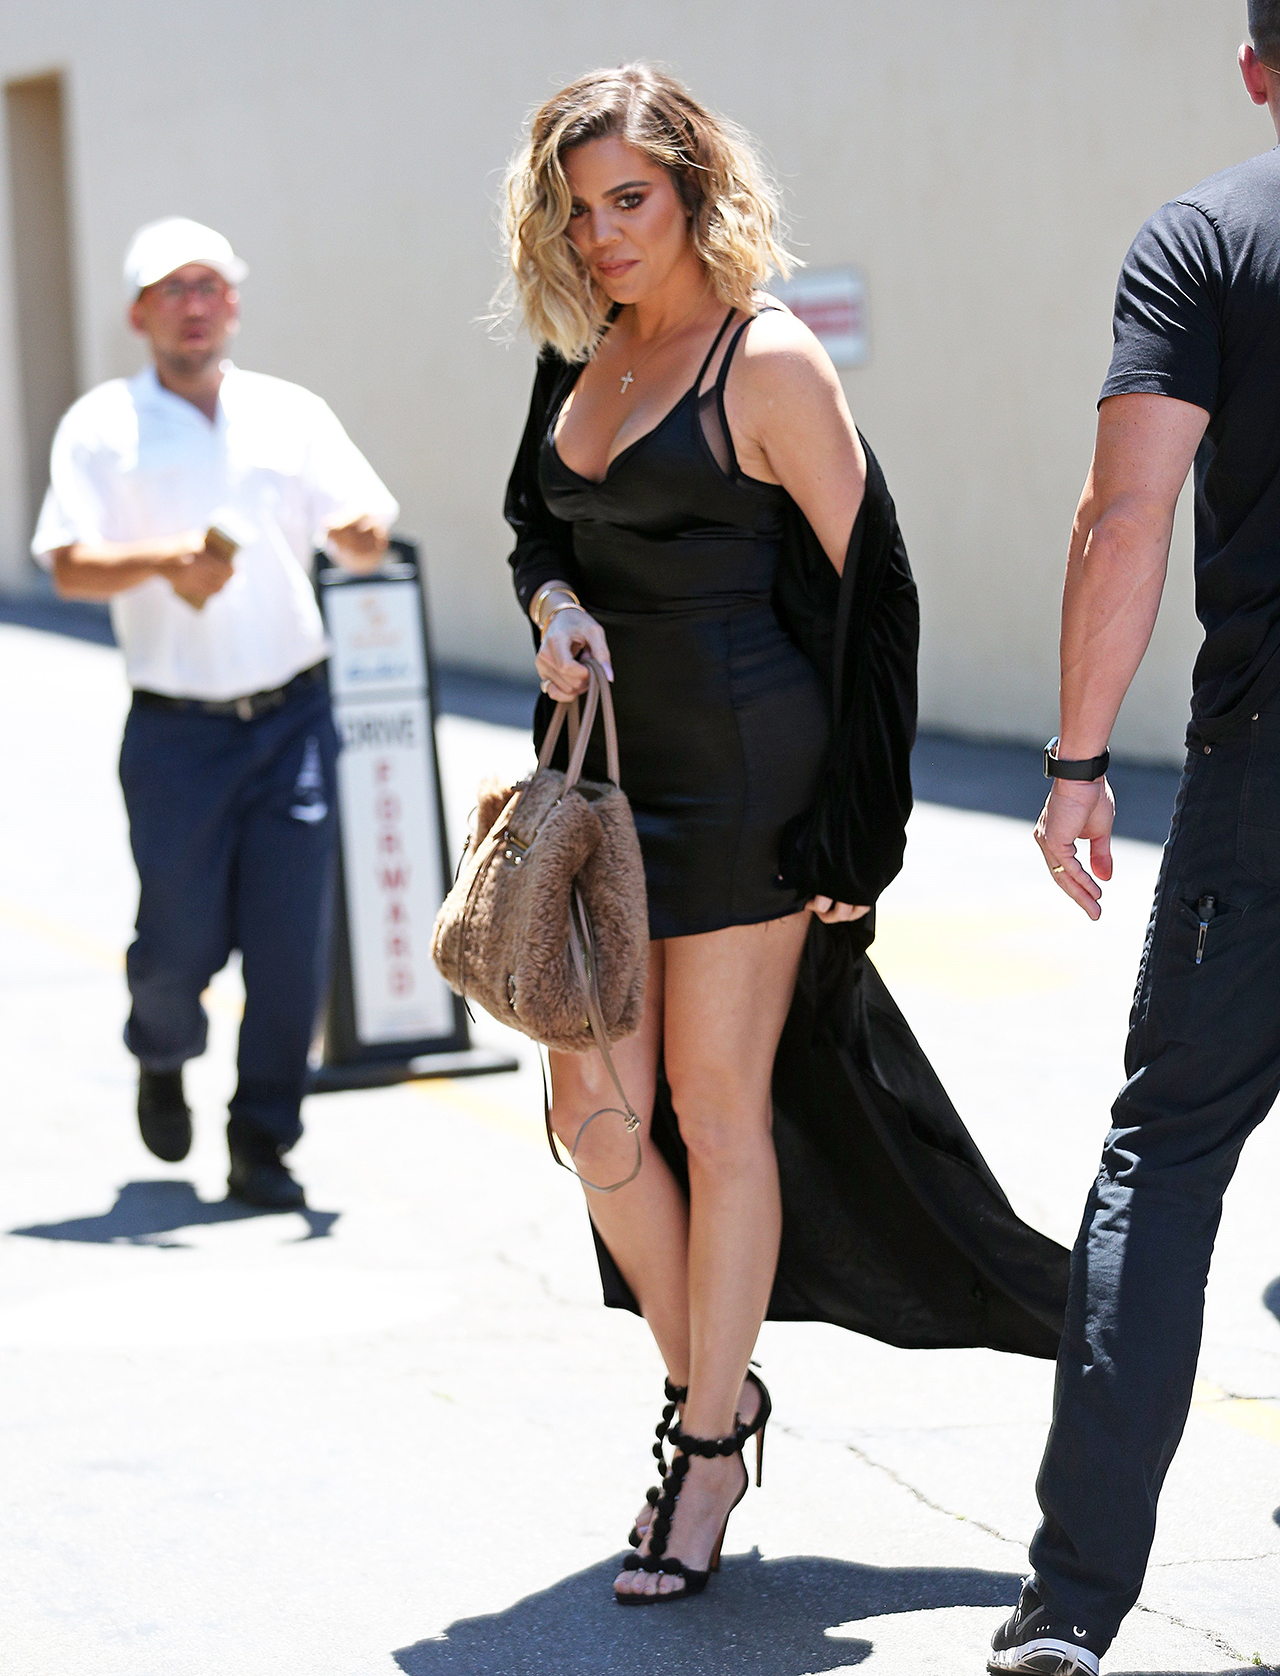 Calabasas, CA  - *EXCLUSIVE* Khloe Kardashian and Malika film at Emilio's Trattoria together. Khloe looks great in a little black dress and heels paired with a duster.  Pictured: Khloe Kardashian  BACKGRID USA 14 JUNE 2017   BYLINE MUST READ: CMaidana / BACKGRID  USA: +1 310 798 9111 / usasales@backgrid.com  UK: +44 208 344 2007 / uksales@backgrid.com  *UK Clients - Pictures Containing Children Please Pixelate Face Prior To Publication*